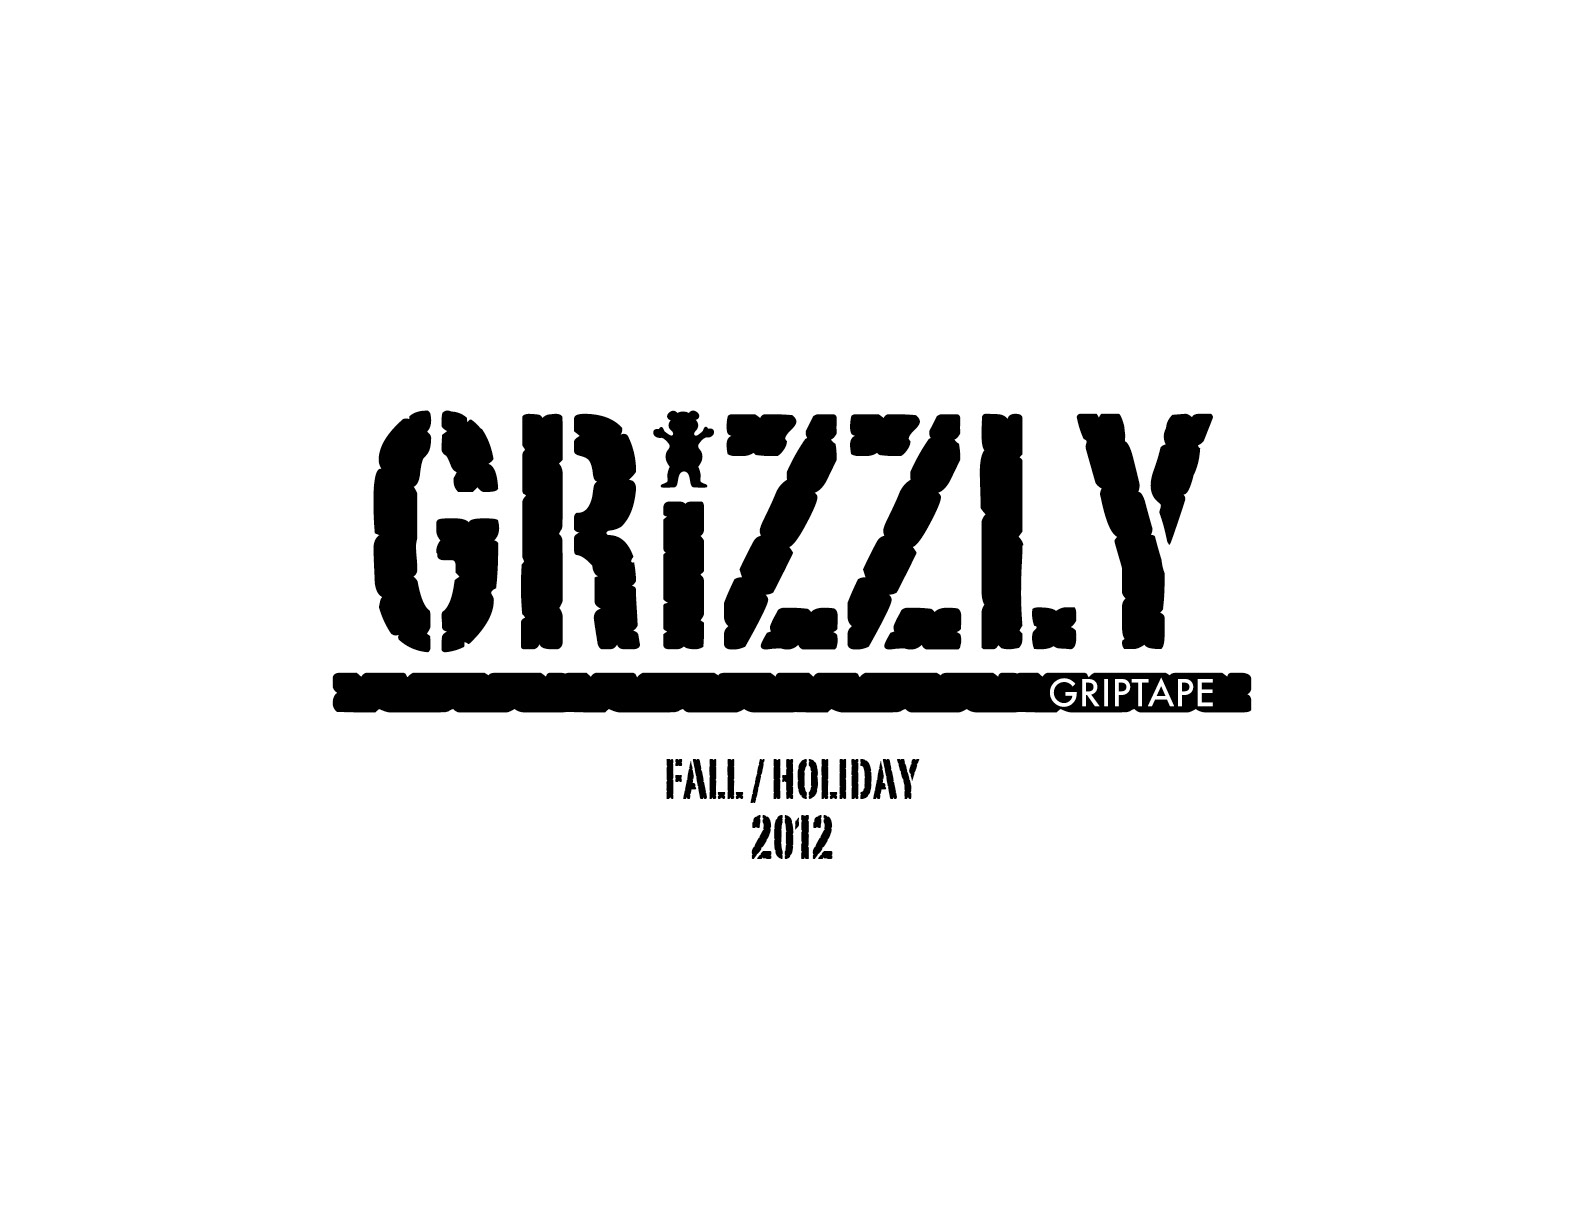 Grizzly Grip Wallpaper 120963 High Definition Wallpapers Suwall 1584x1224